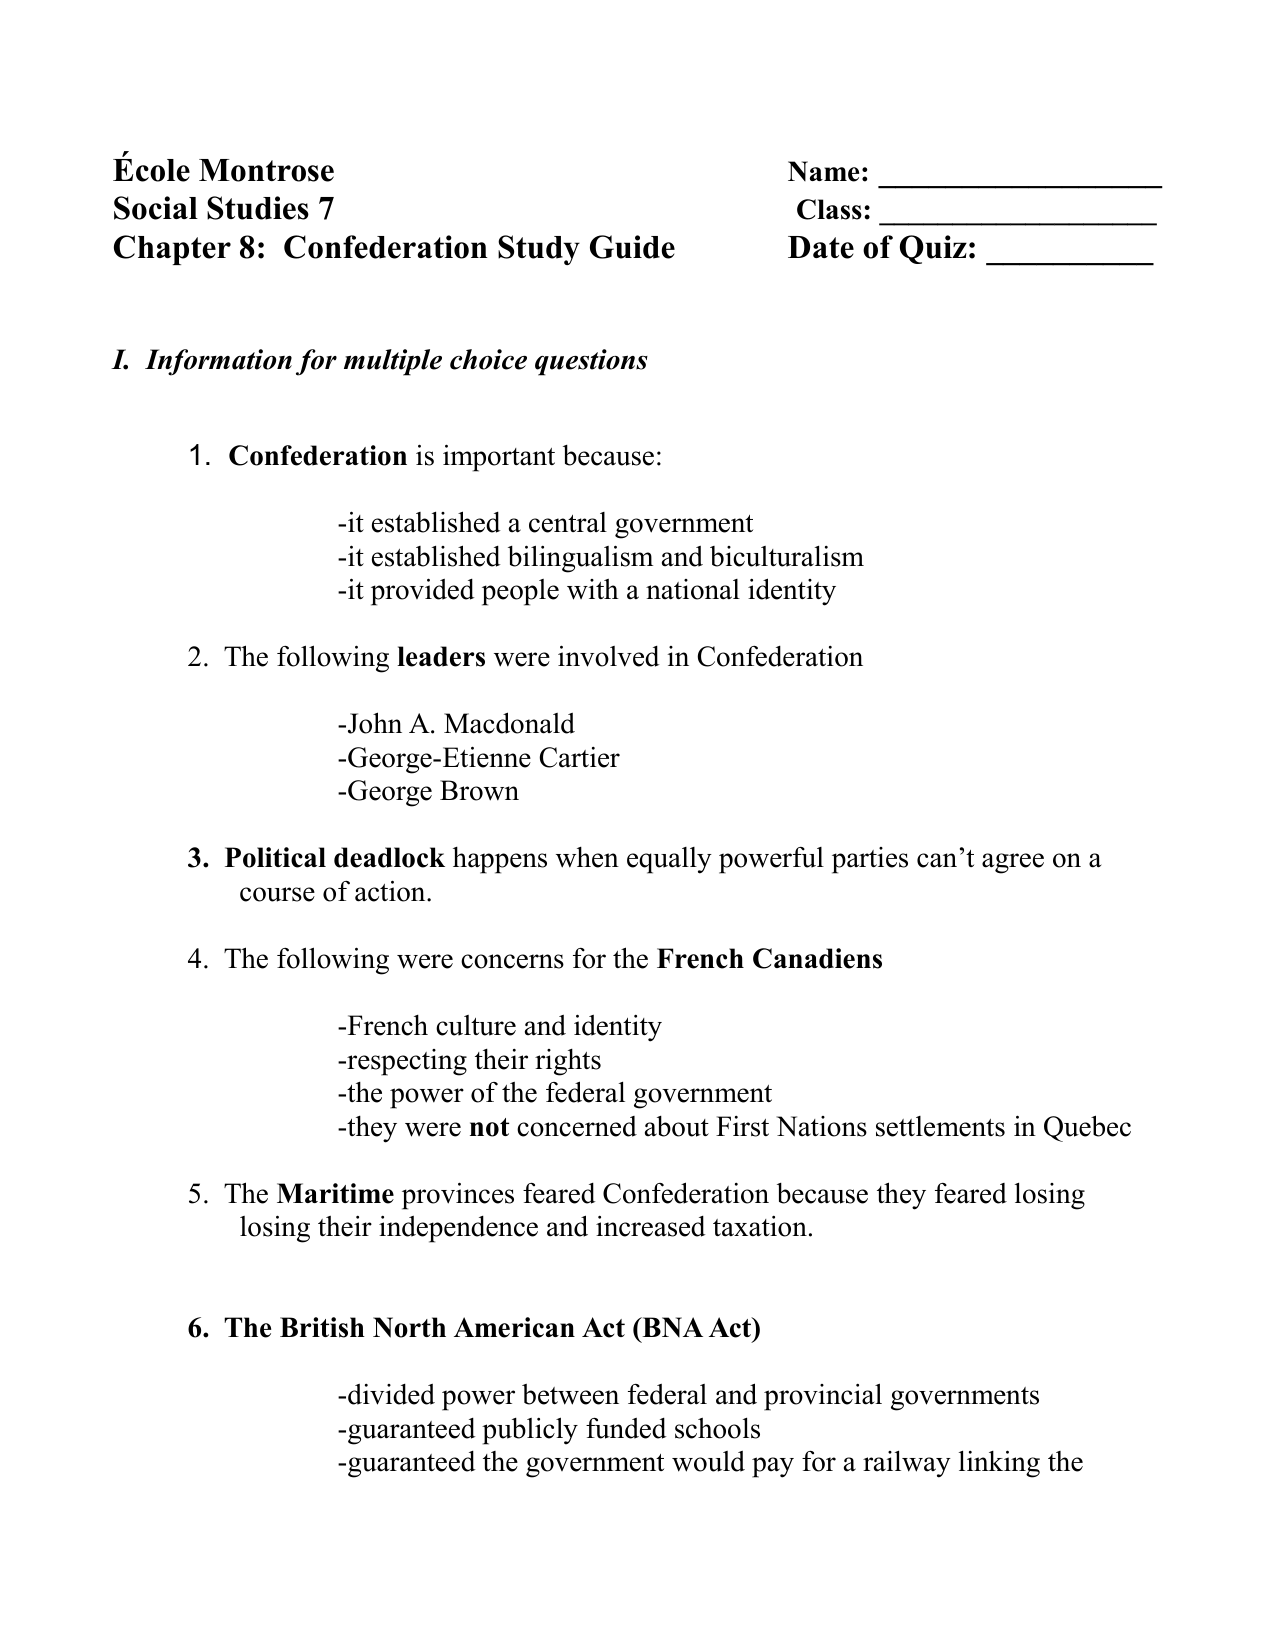 Our Canada Chapter 8 Study Guide